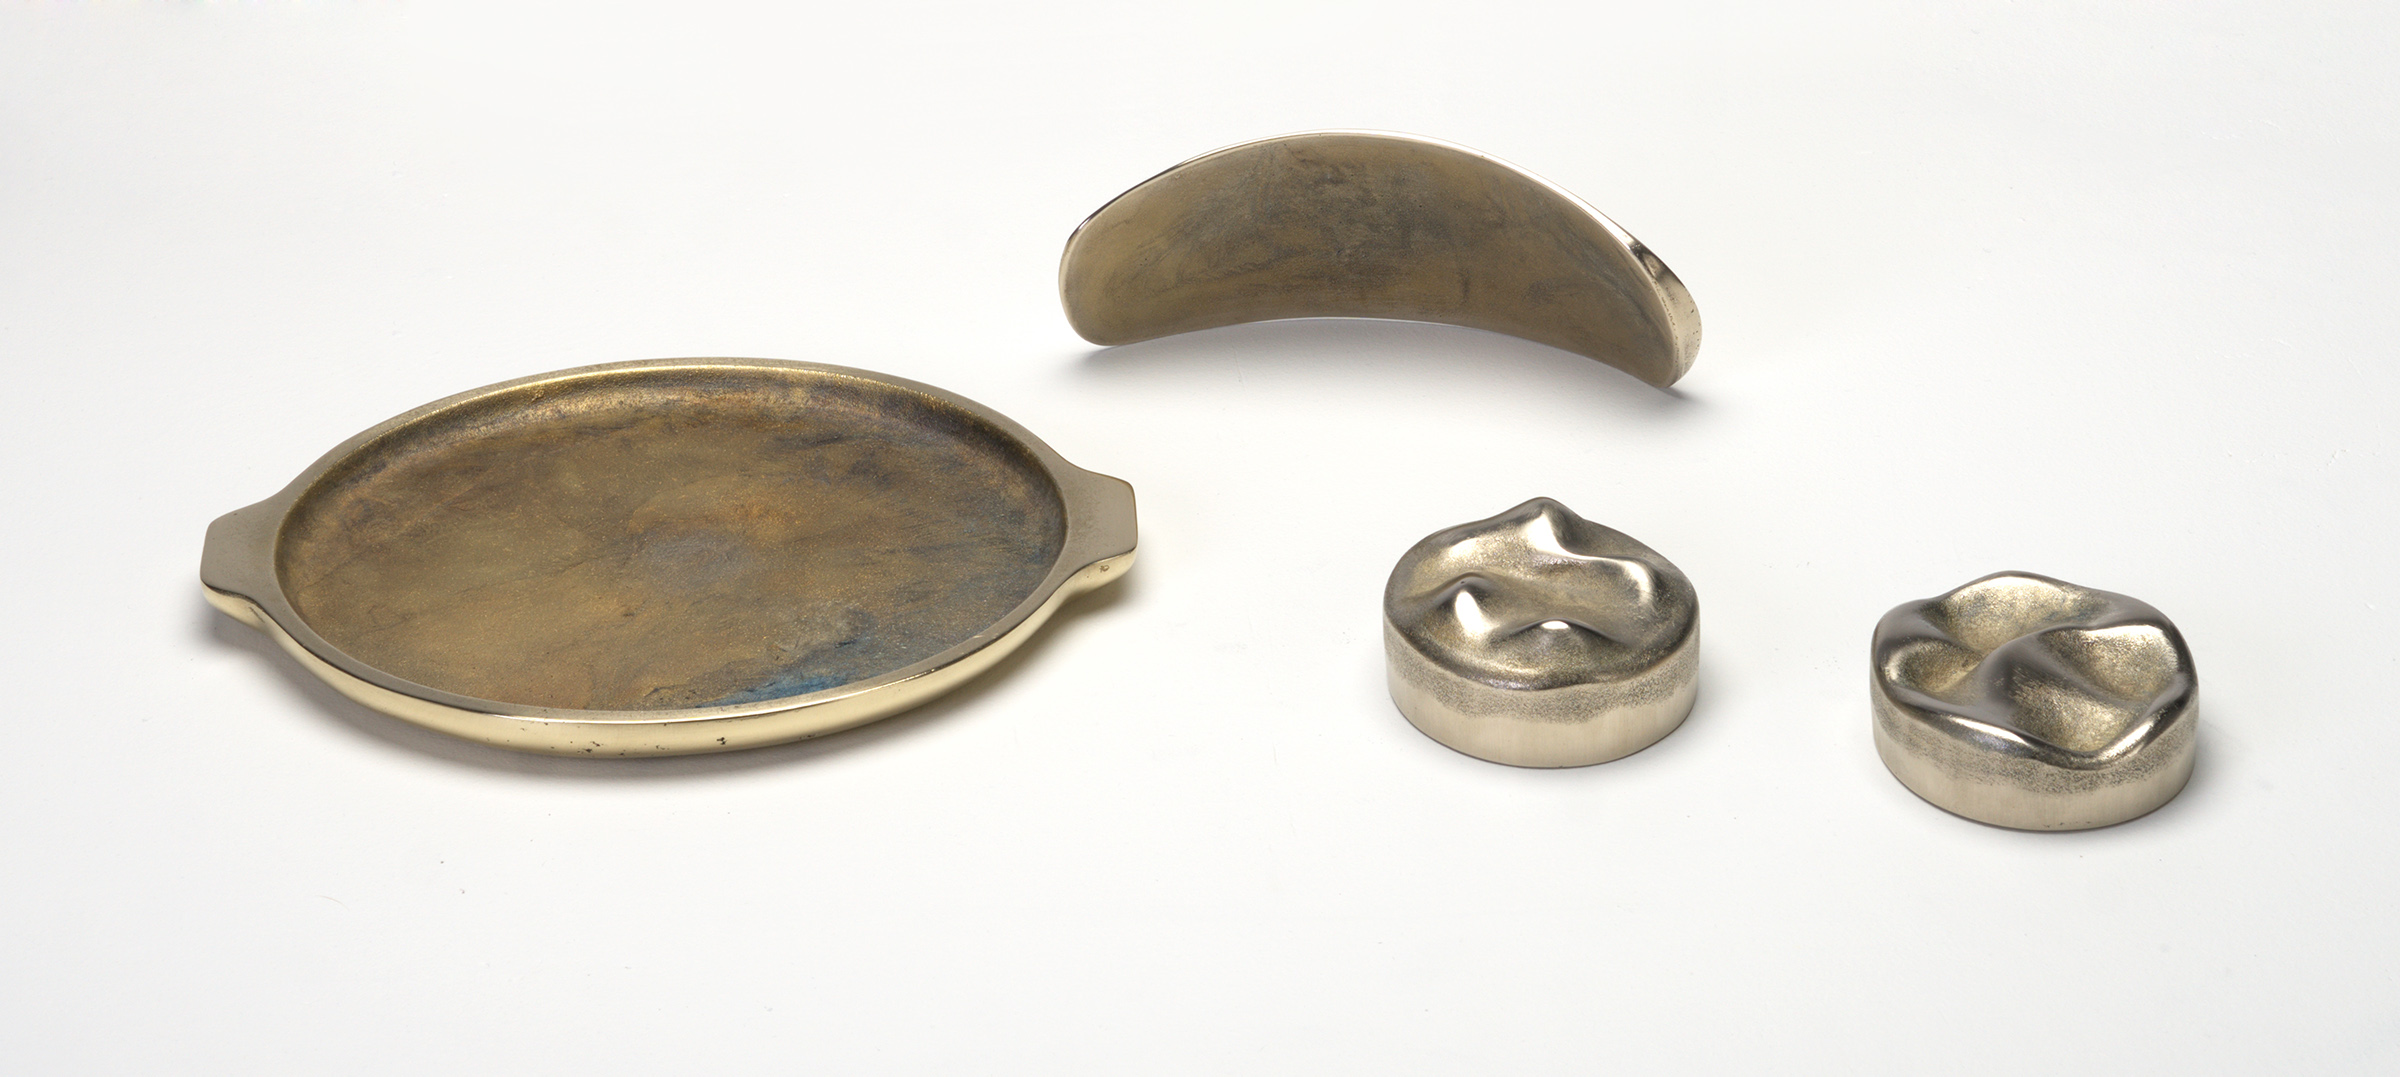 leigh bronze group objects.jpg